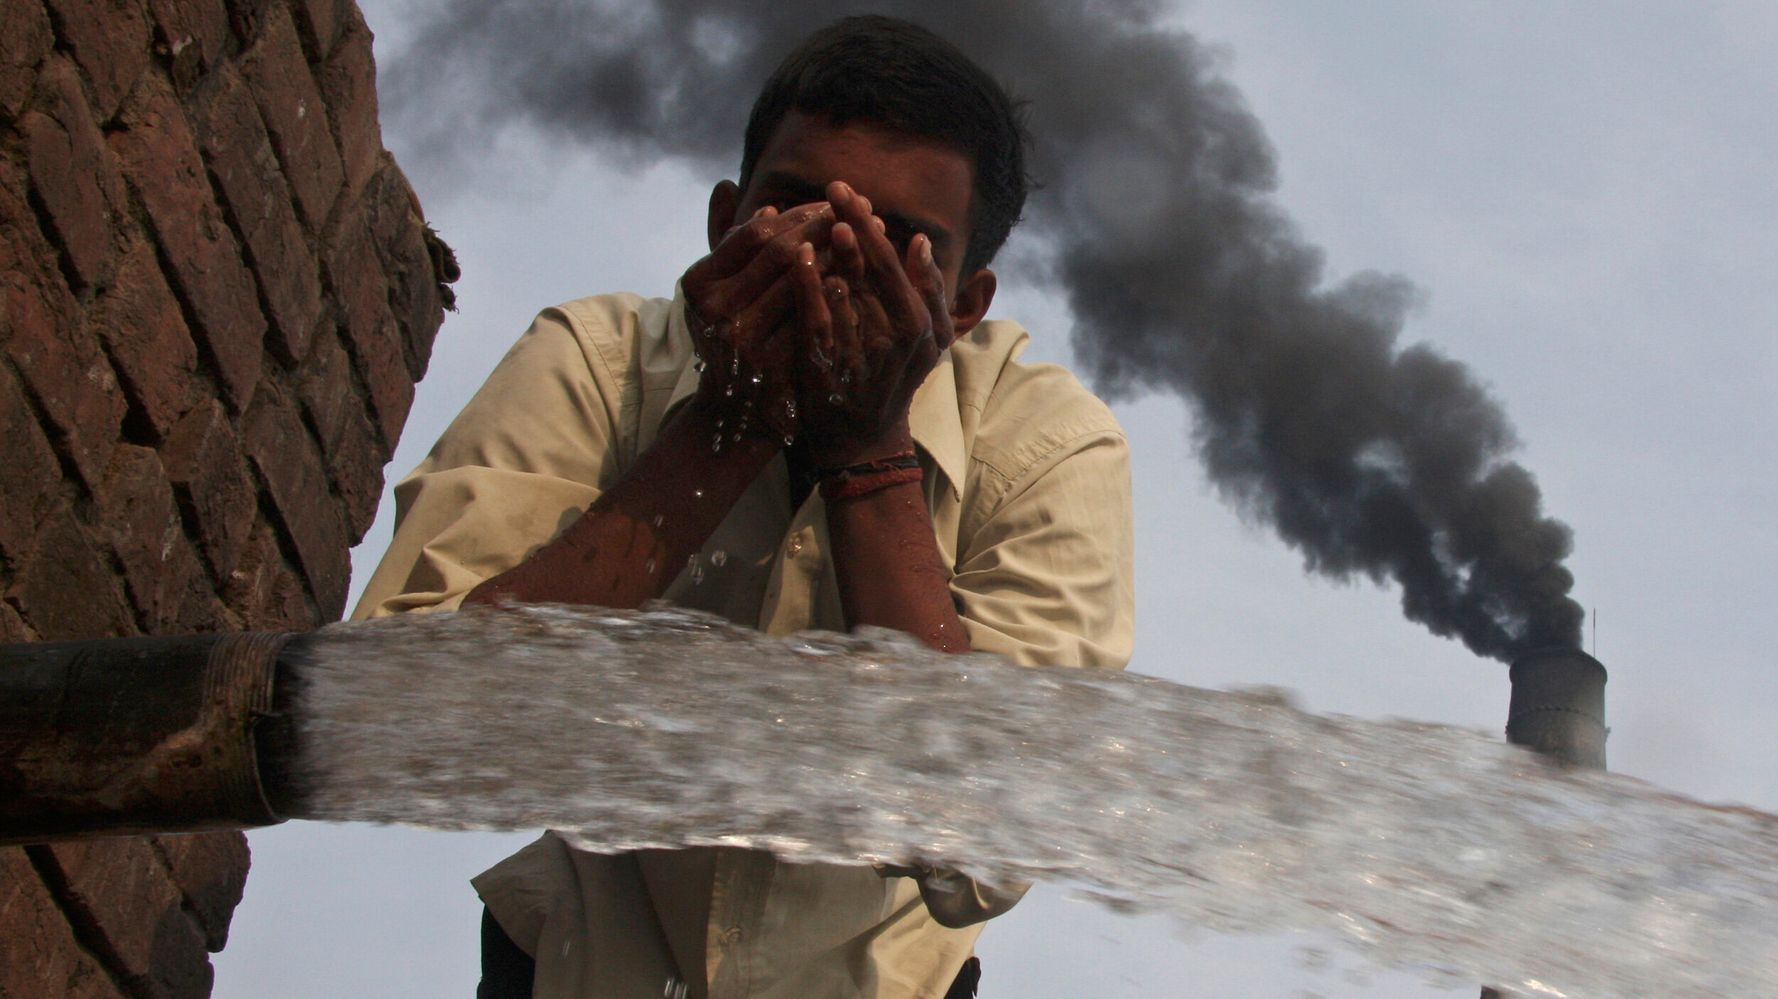 The Pandemic's Effect On Climate-Changing Pollution Was 'Just A Tiny Blip'